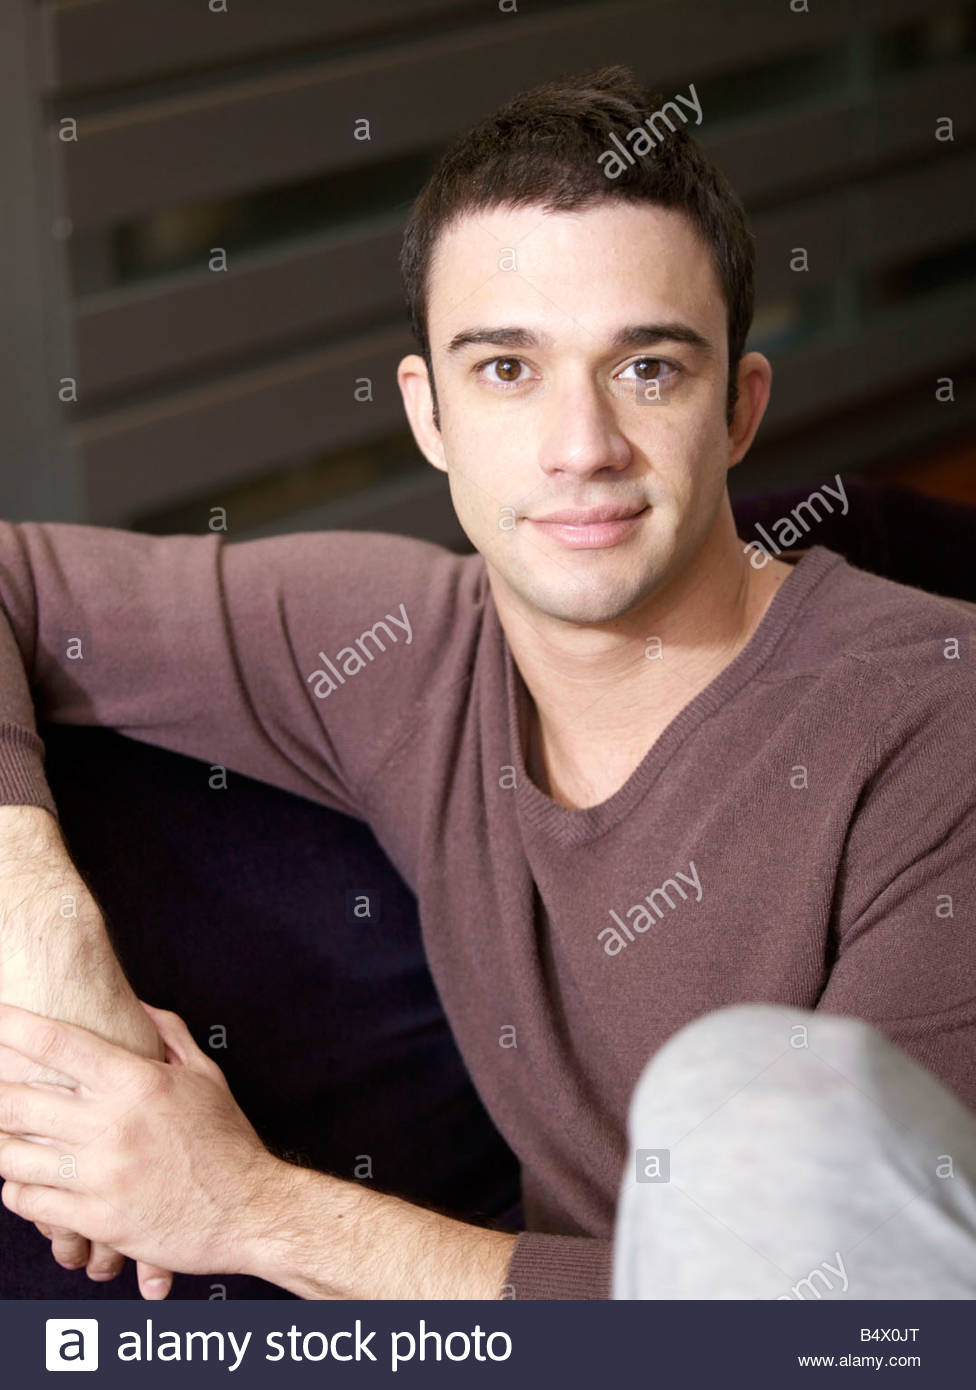 Young man sitting relaxed and casual - Stock Image